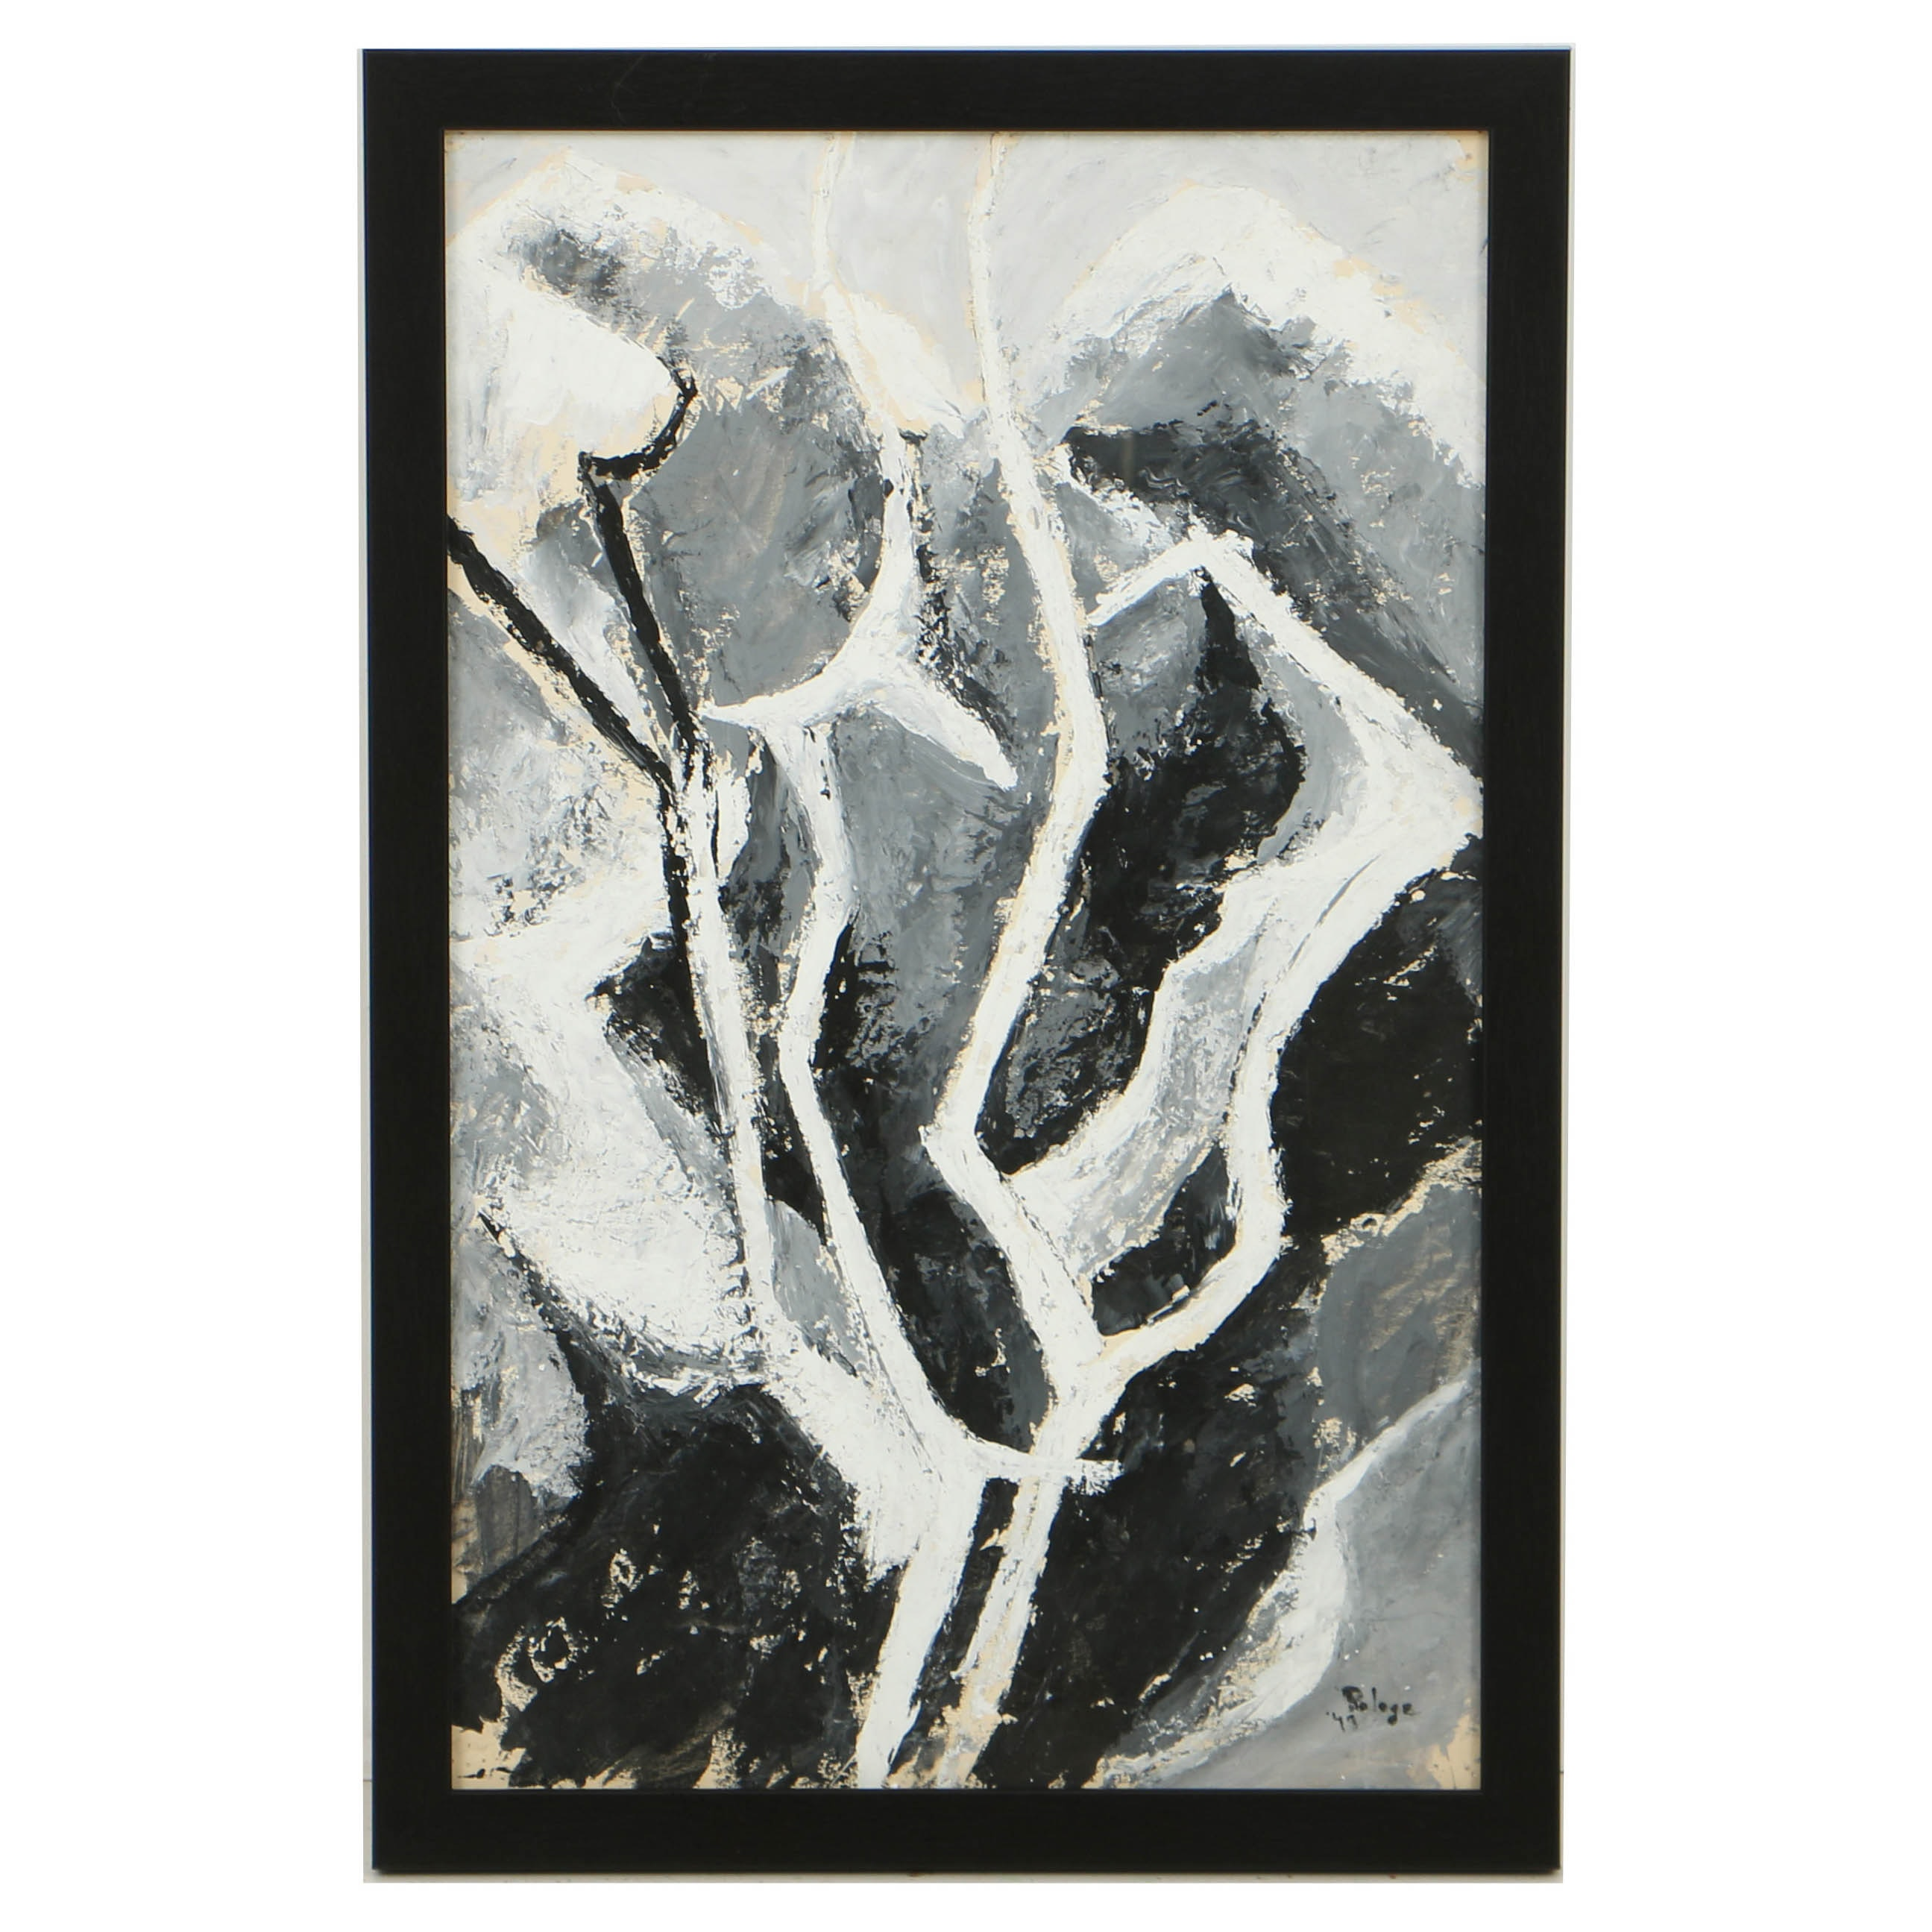 Grace Pologe Grayscale Gouache Painting on Paper of Abstracted Tree